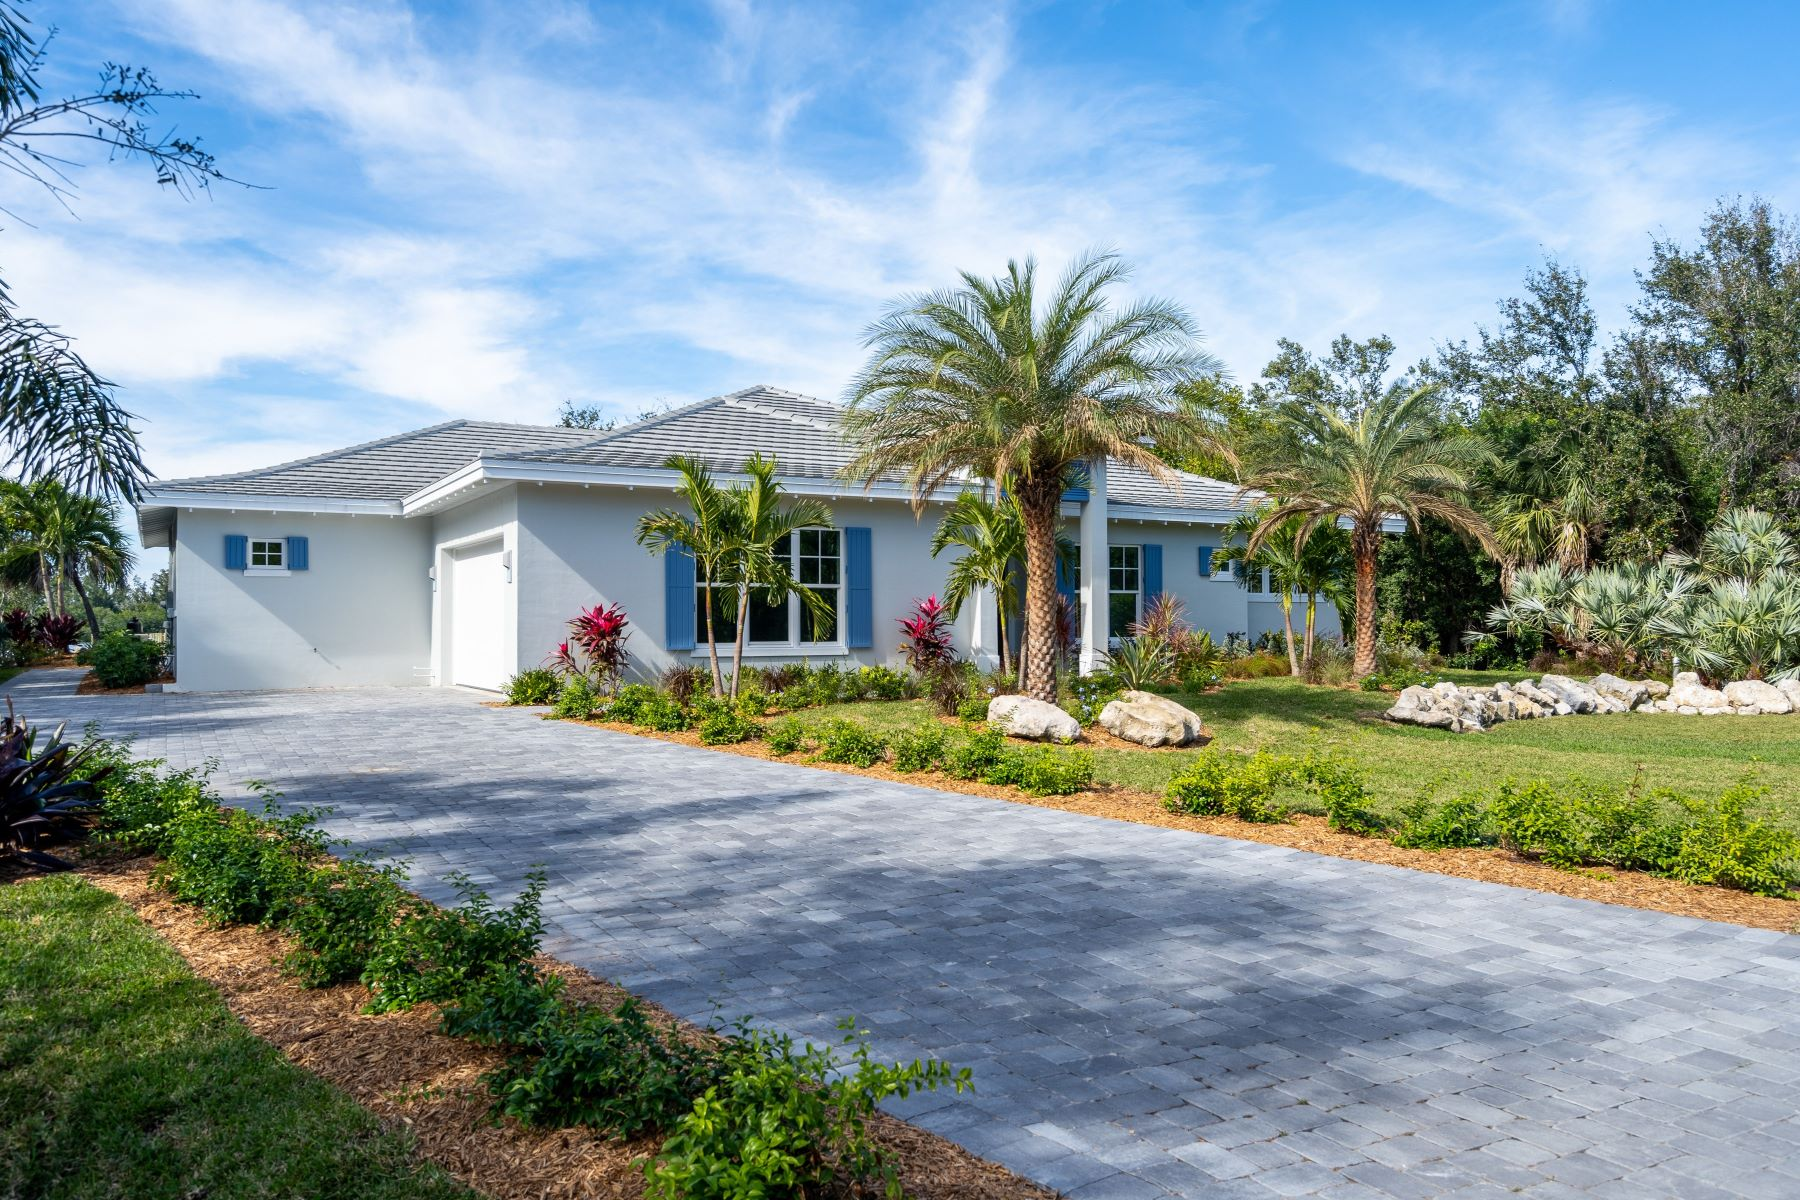 Property for Sale at 1409 Old Winter Beach Road Indian River Shores, Florida 32963 United States